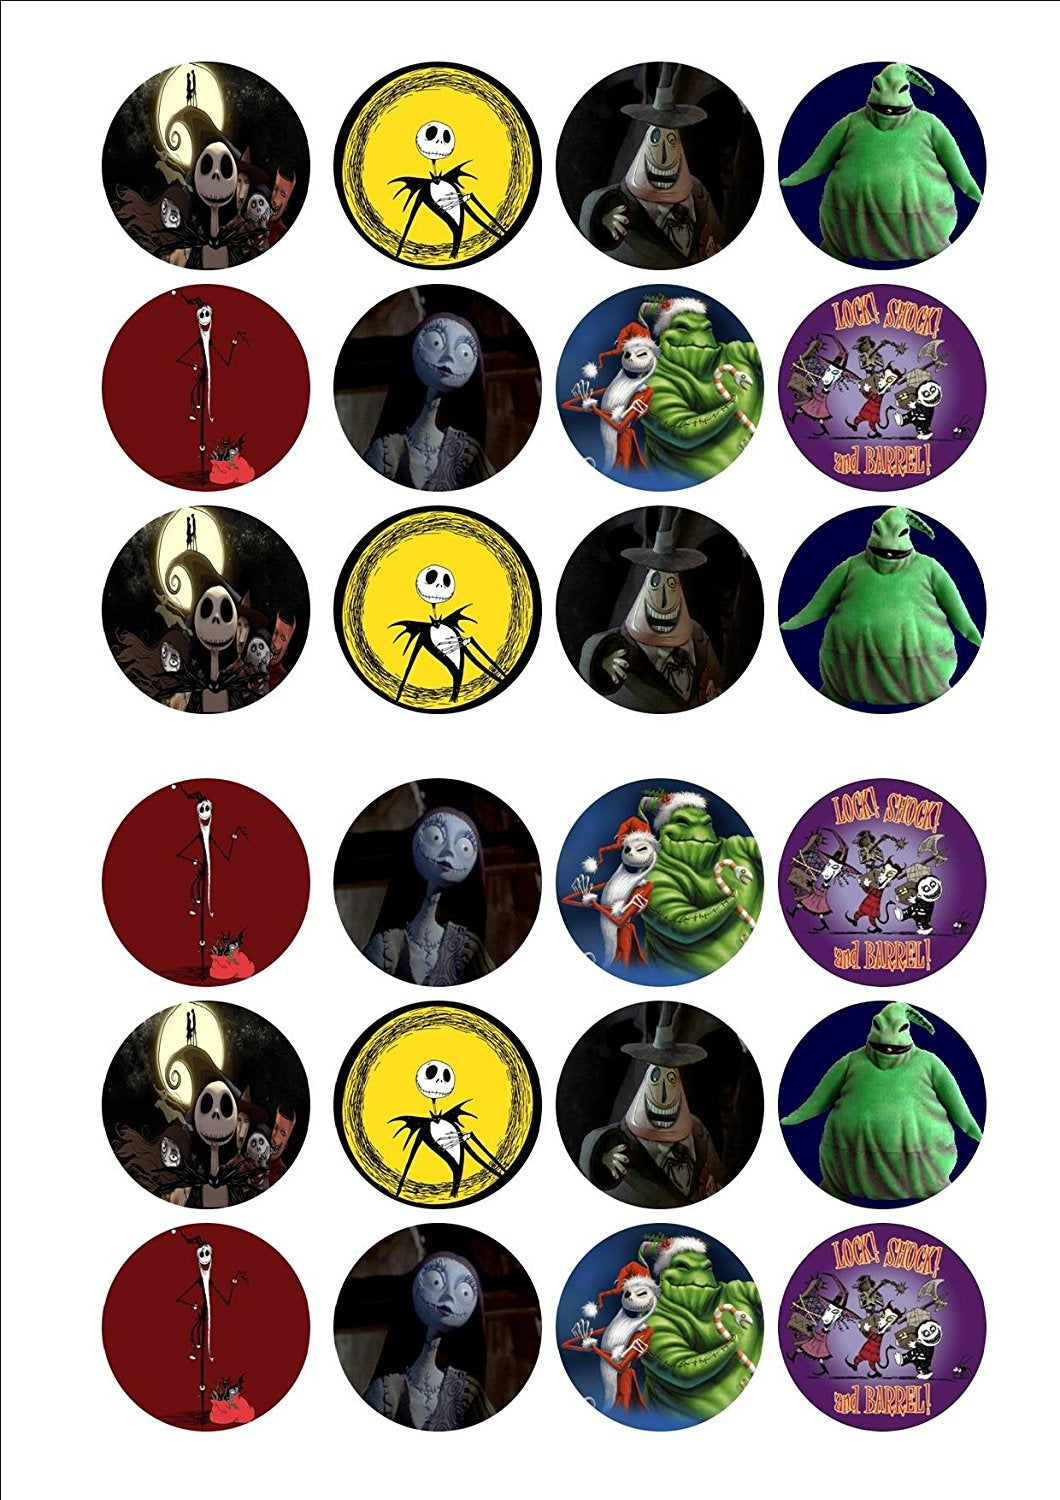 Nightmare Before Christmas Jack Skellington Oogie Boogie Sally Edible Cupcake Topper Images ABPID07178